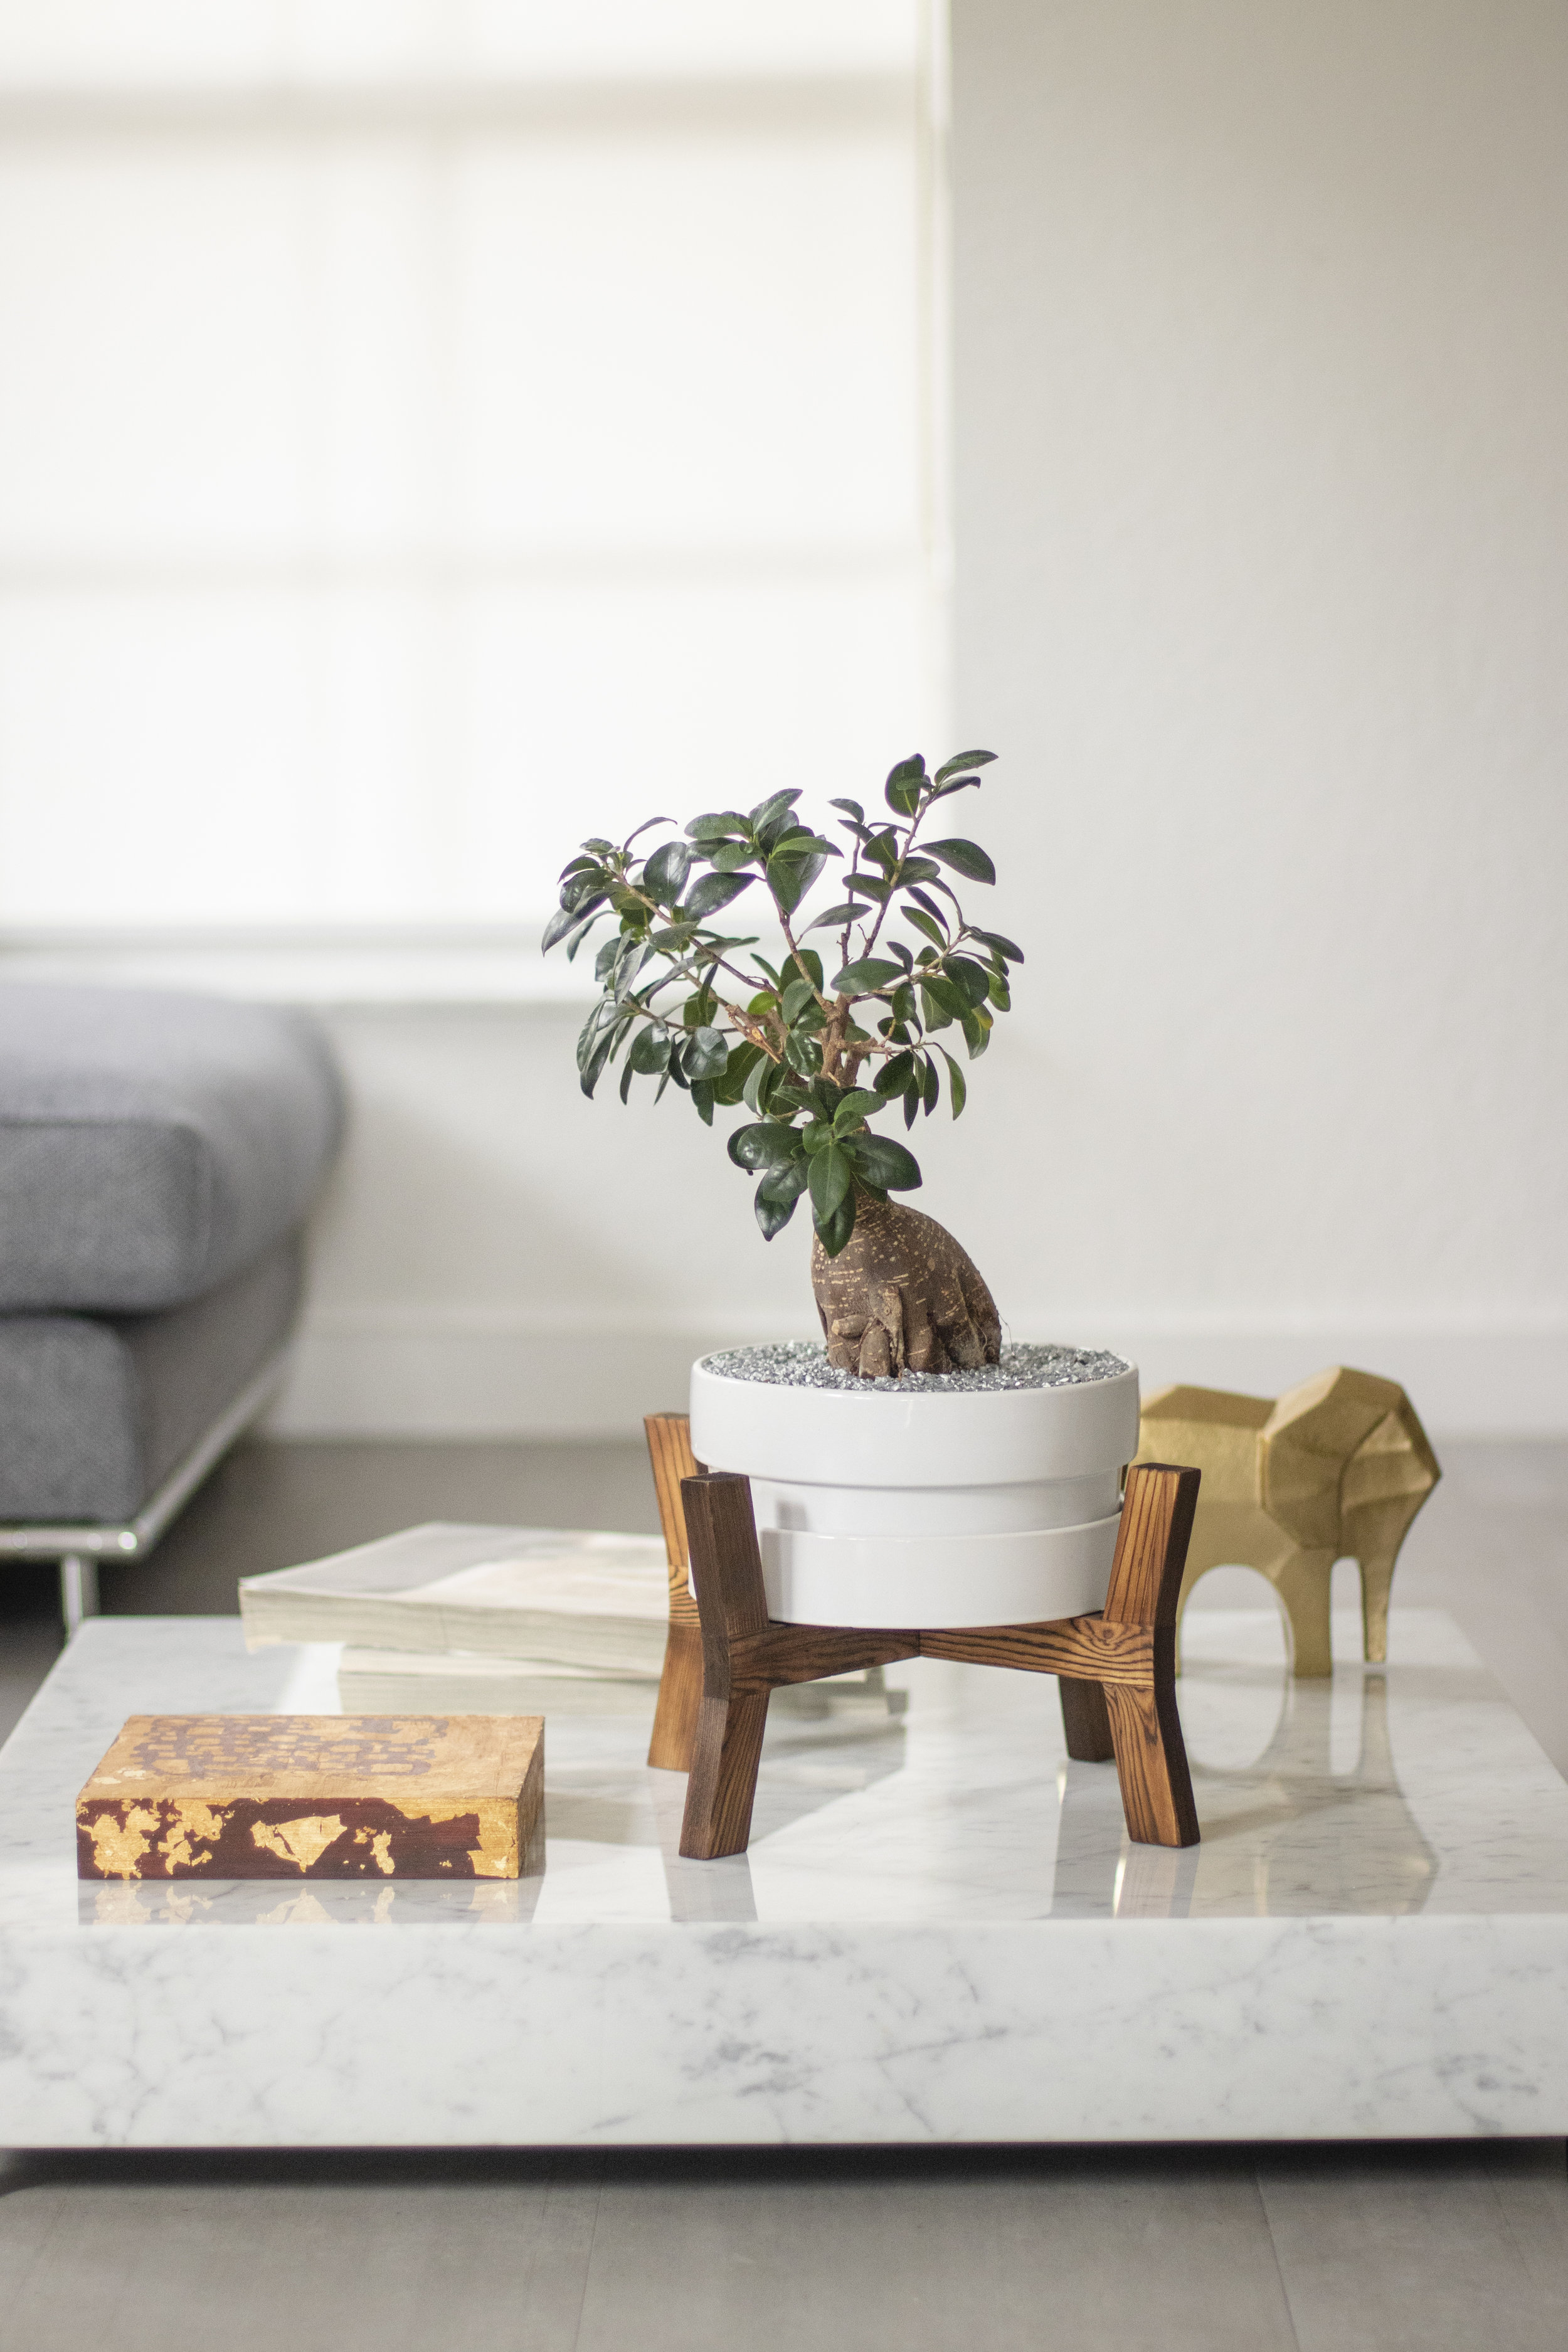 Product photography 1